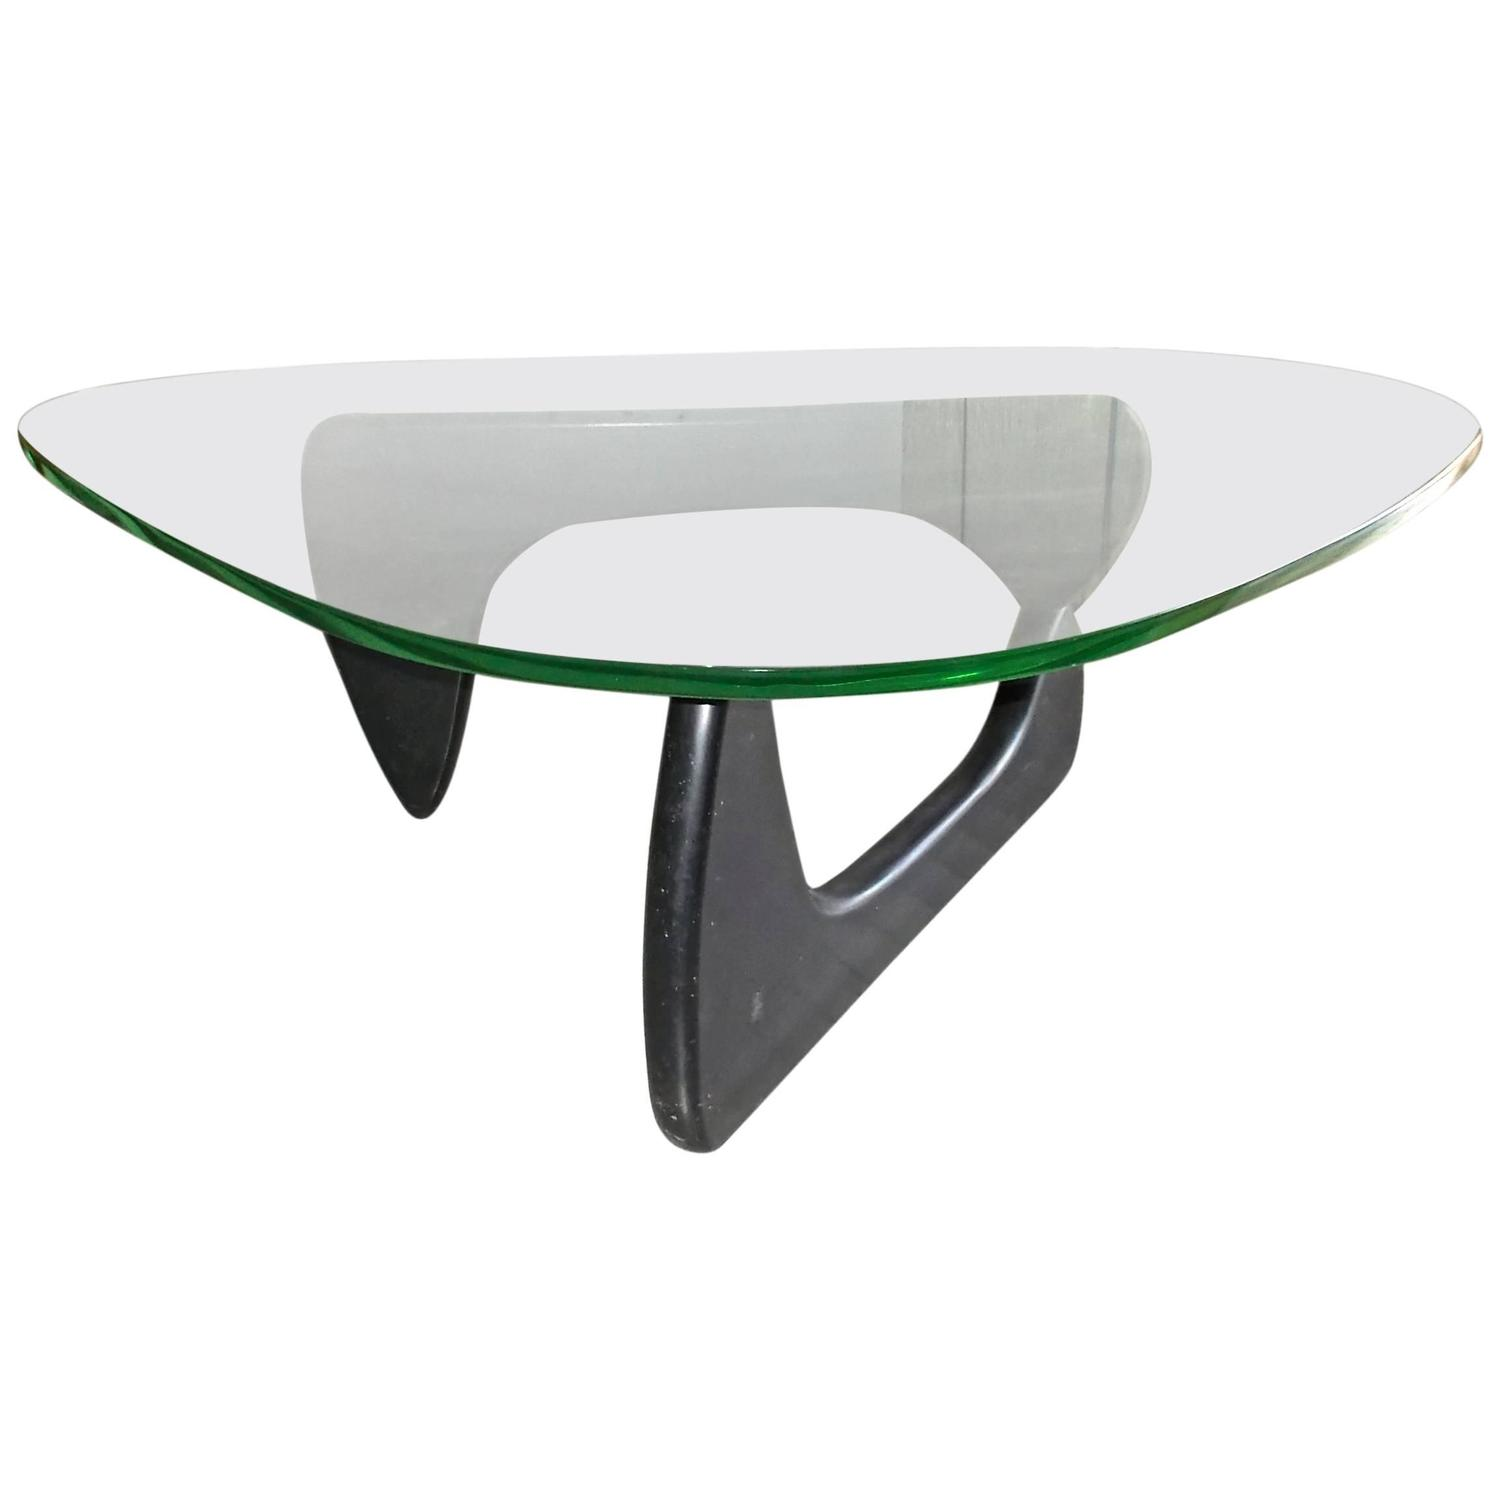 Very Rare Isamu Noguchi Rudder Coffee Table Model IN 52 Herman